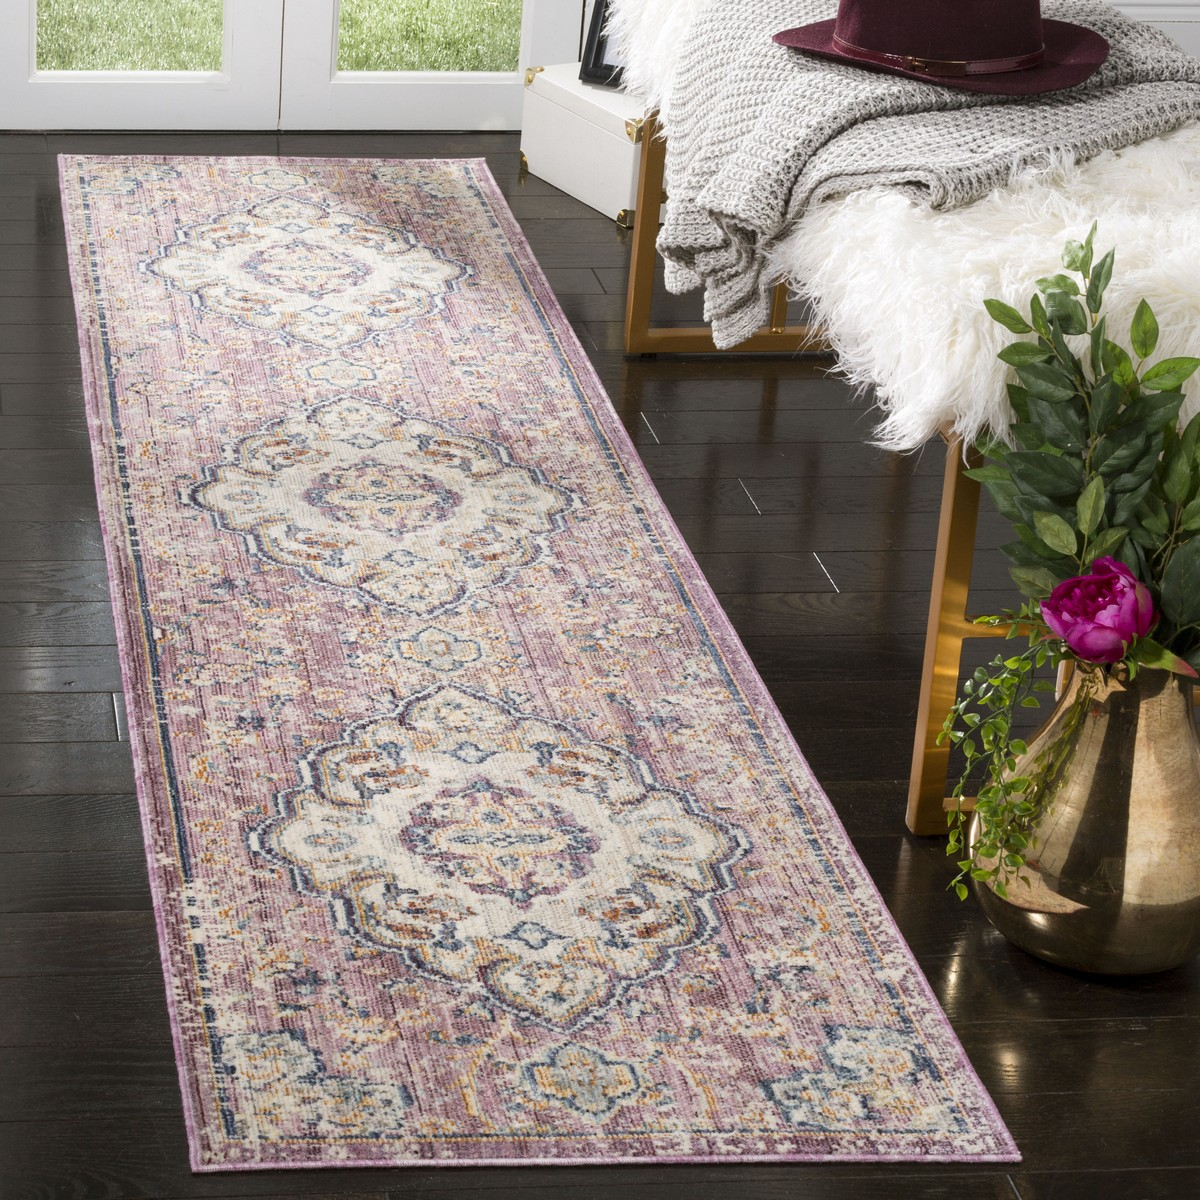 Rug Ill711f Illusion Area Rugs By Safavieh